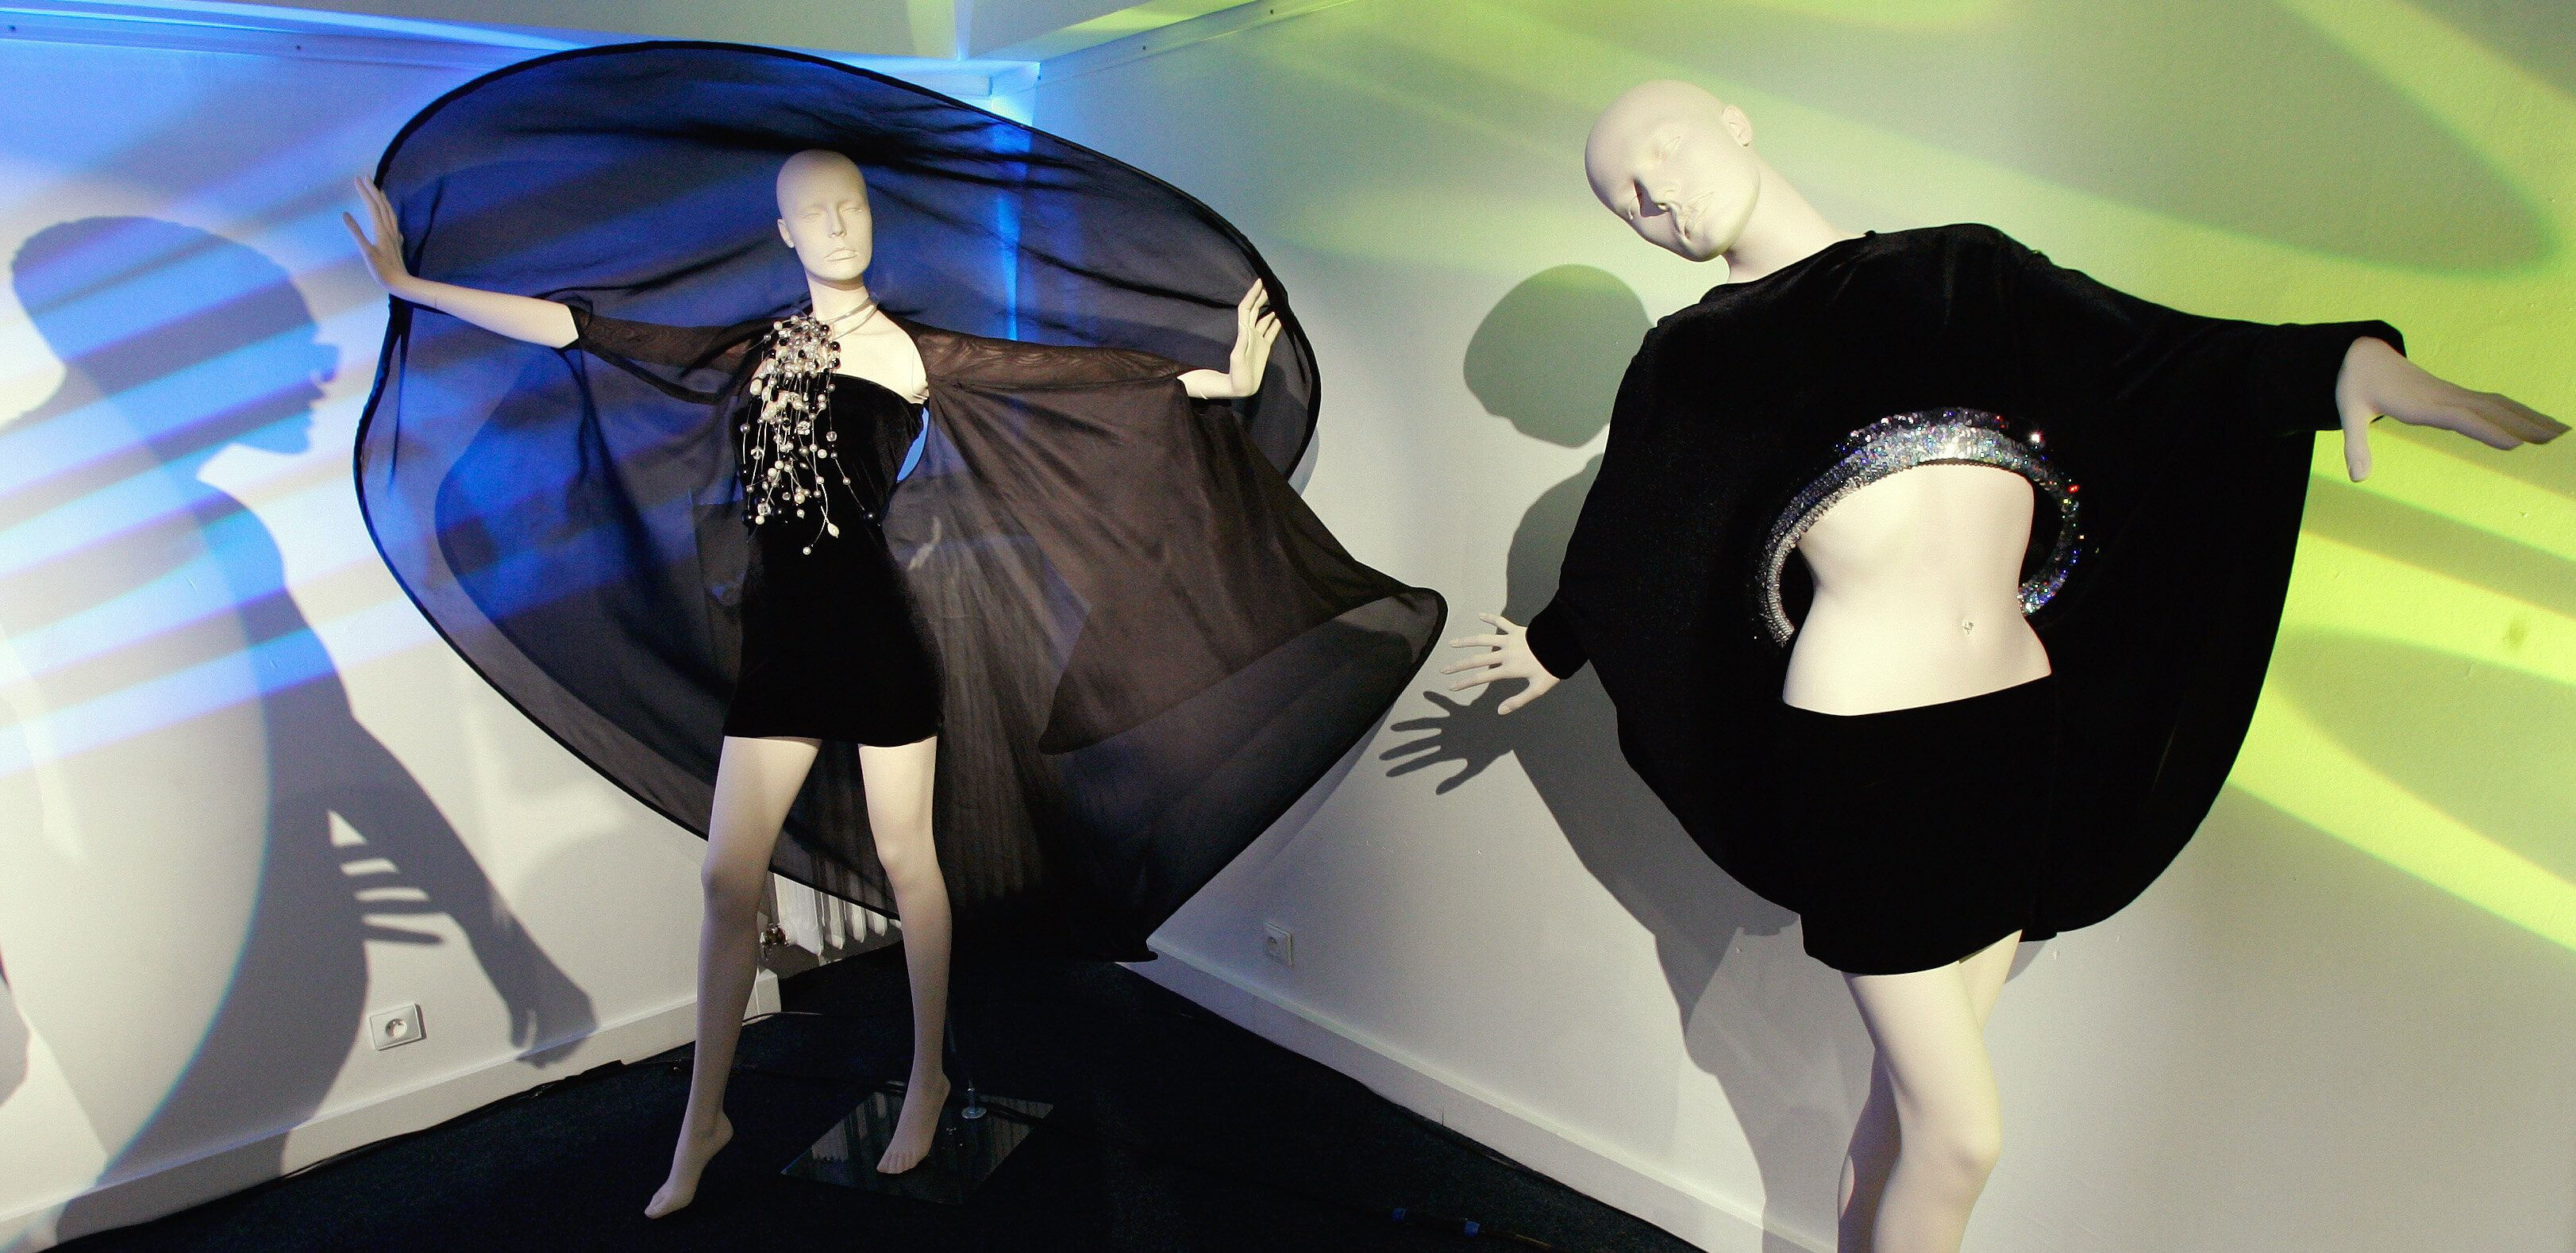 Creations by Pierre Cardin are displayed as part of his Spring-Summer 2007 fashion collection in Paris in 2006.